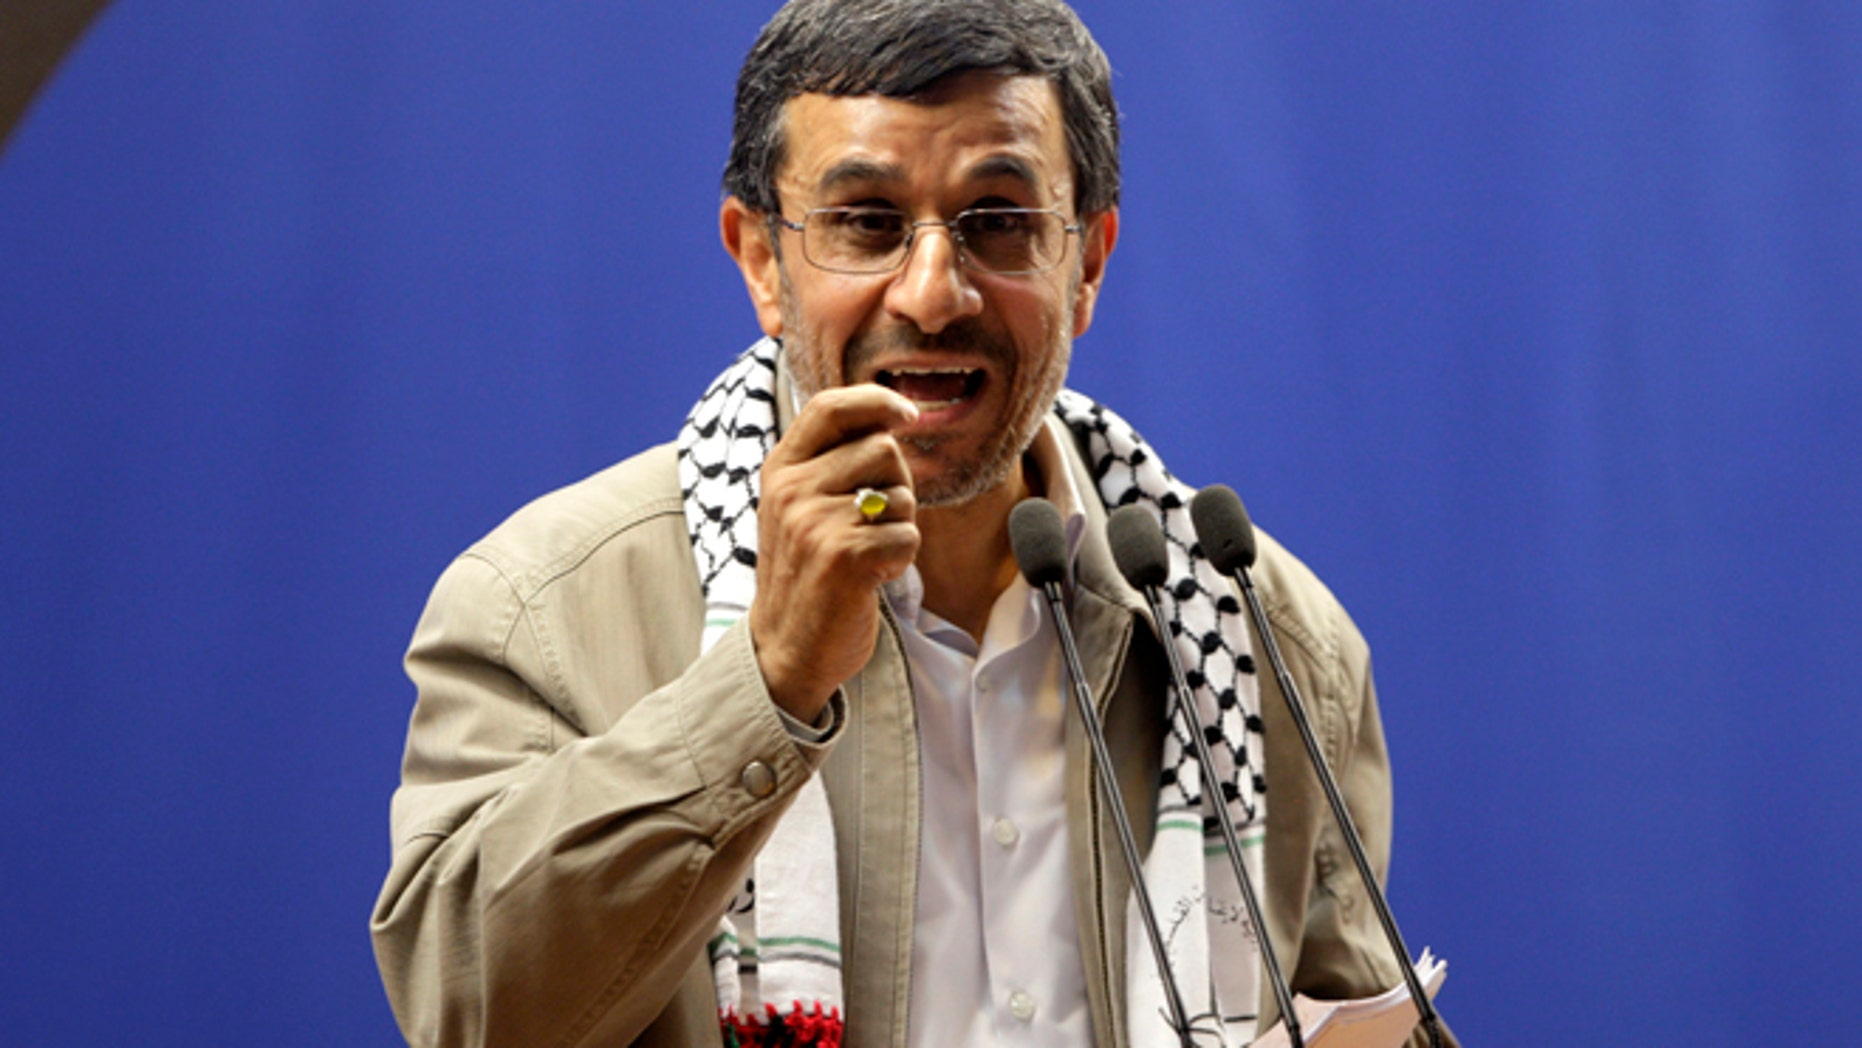 Aug. 17, 2012: Iranian President Mahmoud Ahmadinejad speaks at the conclusion of an annual pro-Palestinian rally in Tehran.